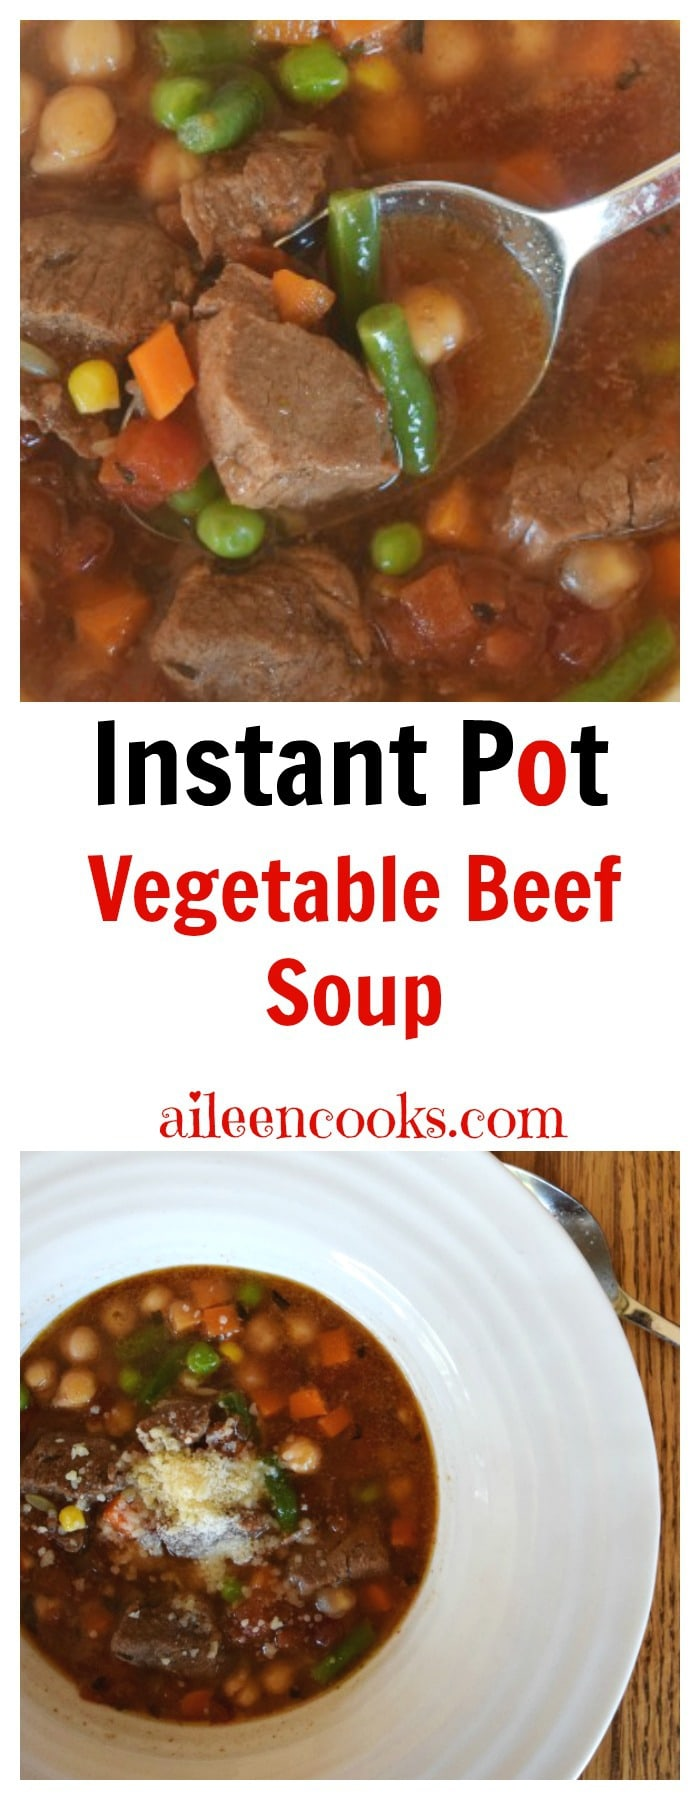 Pressure Cooker Vegetable Beef Stew is a healthy instant pot recipe made with tender beef and vegetables. Recipe from aileencooks.com. Pressure Cooker recipes. Instant Pot Vegetable Beef Soup. Instant Pot Recipes.